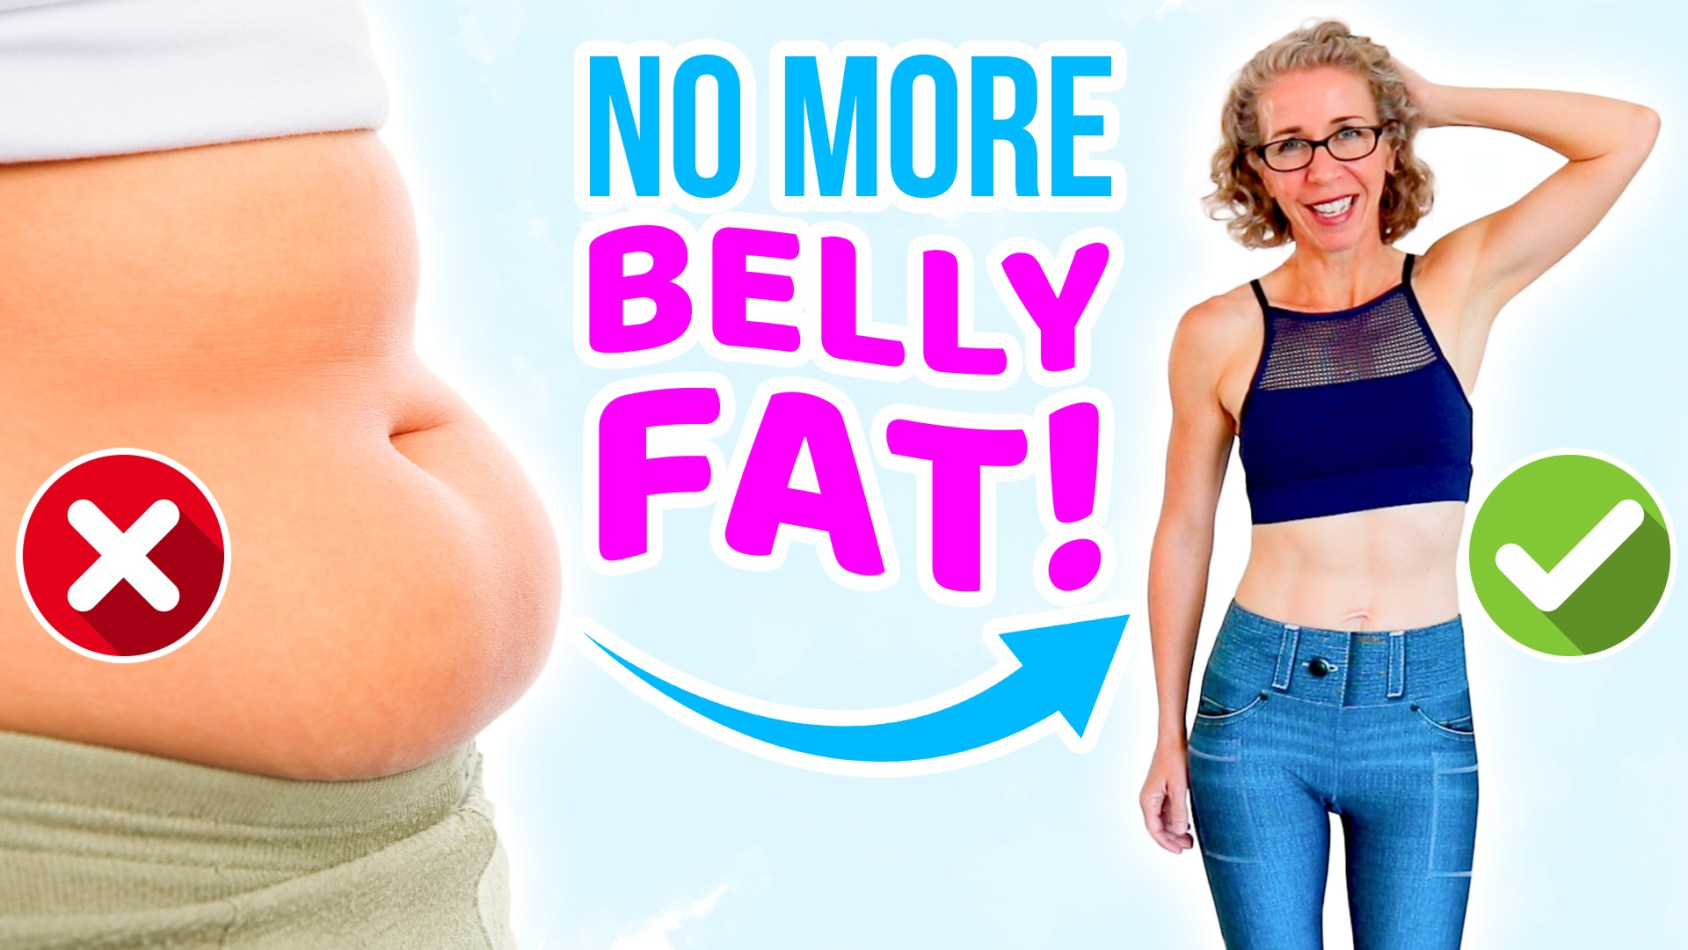 How to BANISH Menopausal BELLY FAT Forever!